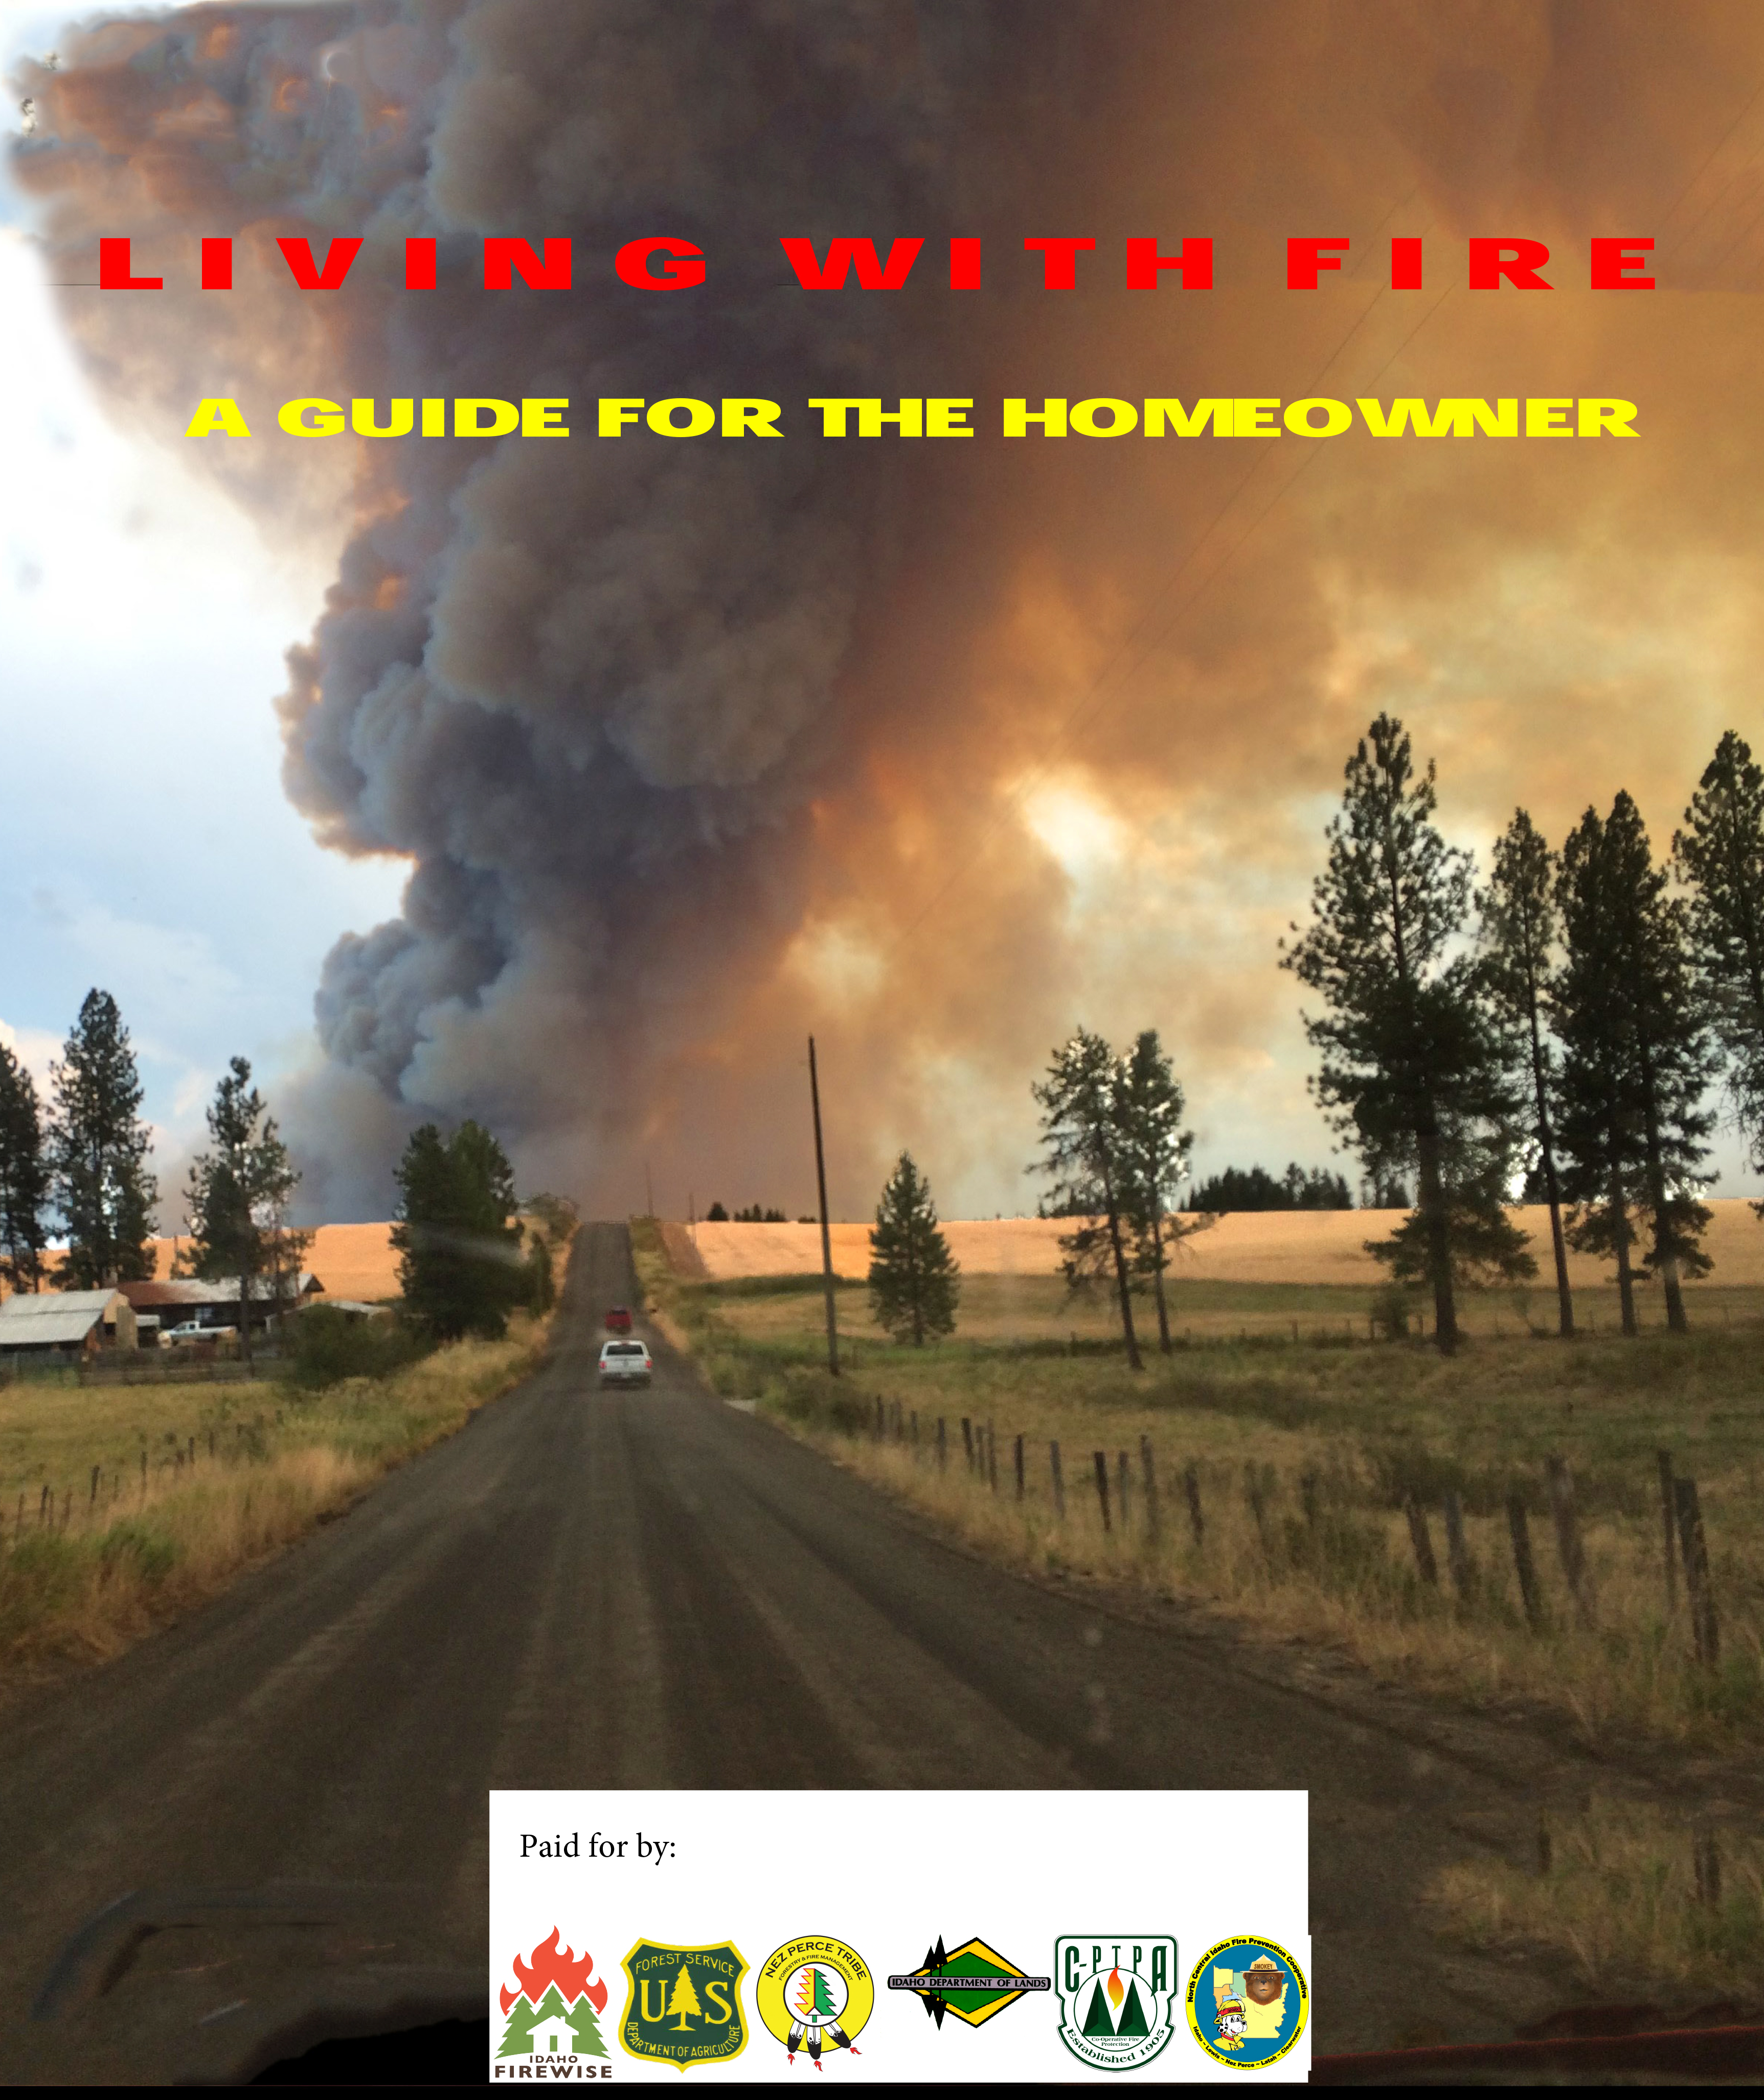 Cover photo depicts a country road with vehicle headed towards a wildfire.